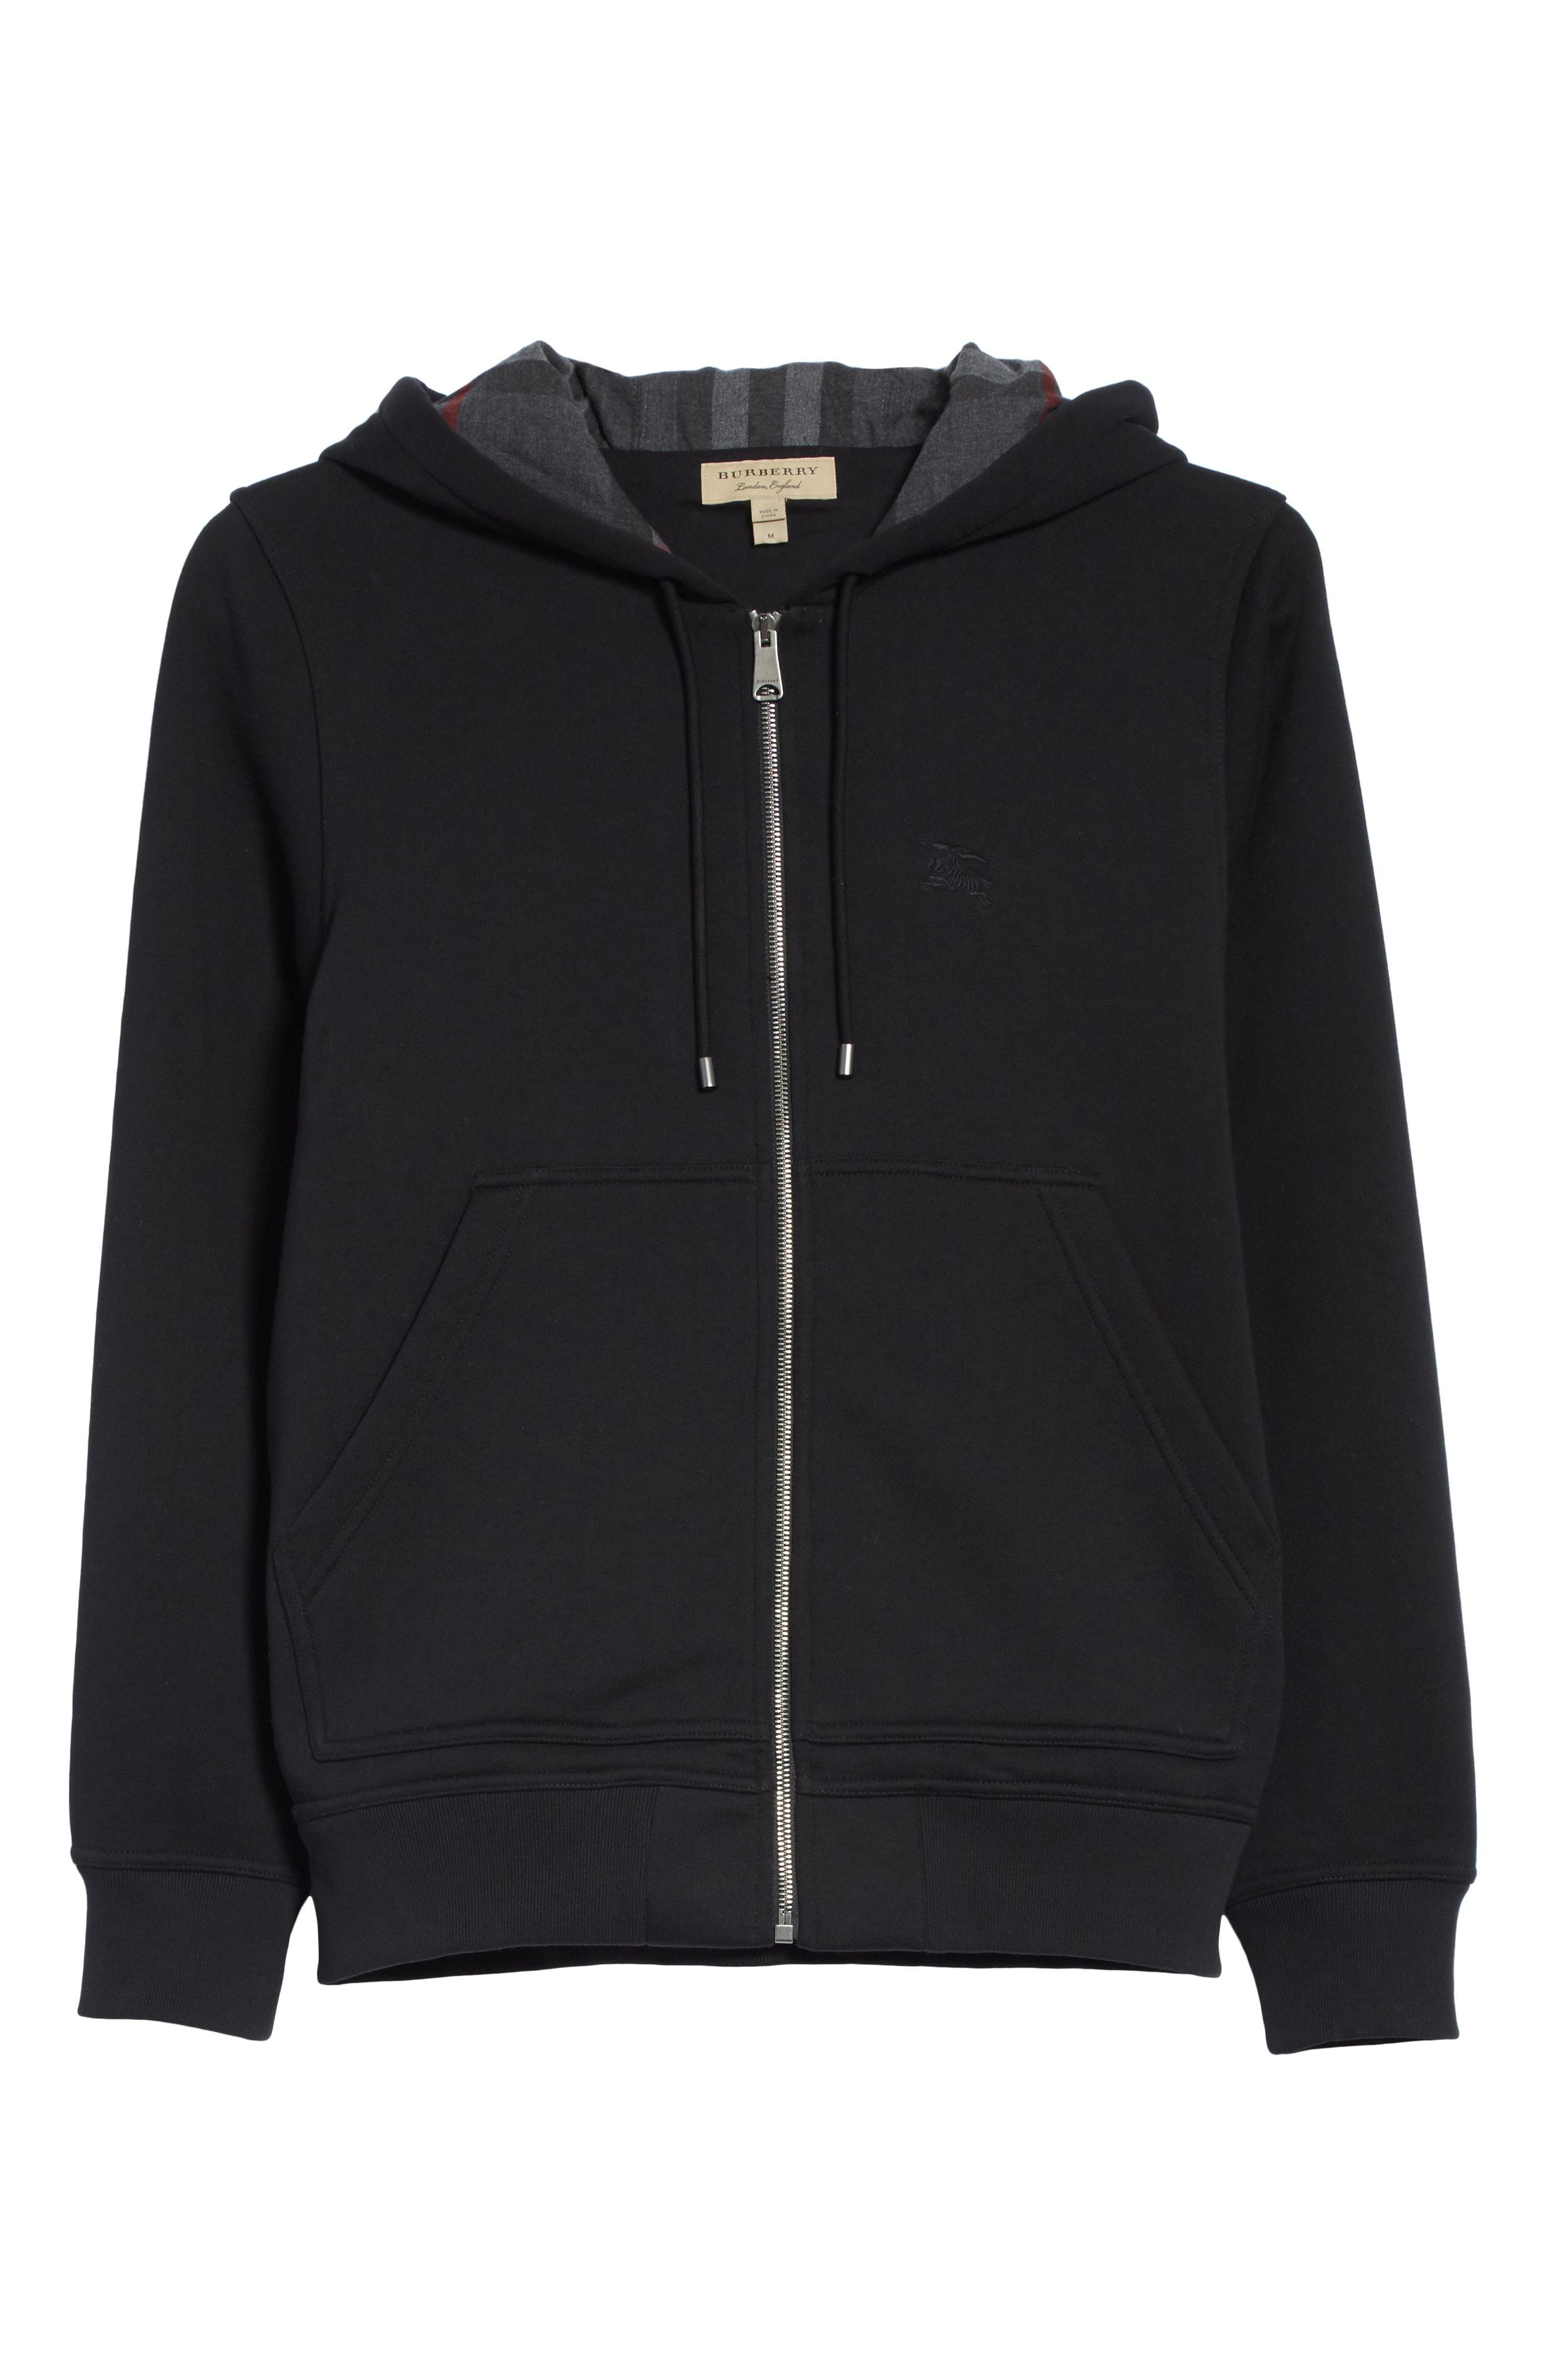 6caf5dd1b538 Burberry Logo-Embroidered Hooded Cotton Sweatshirt In Black